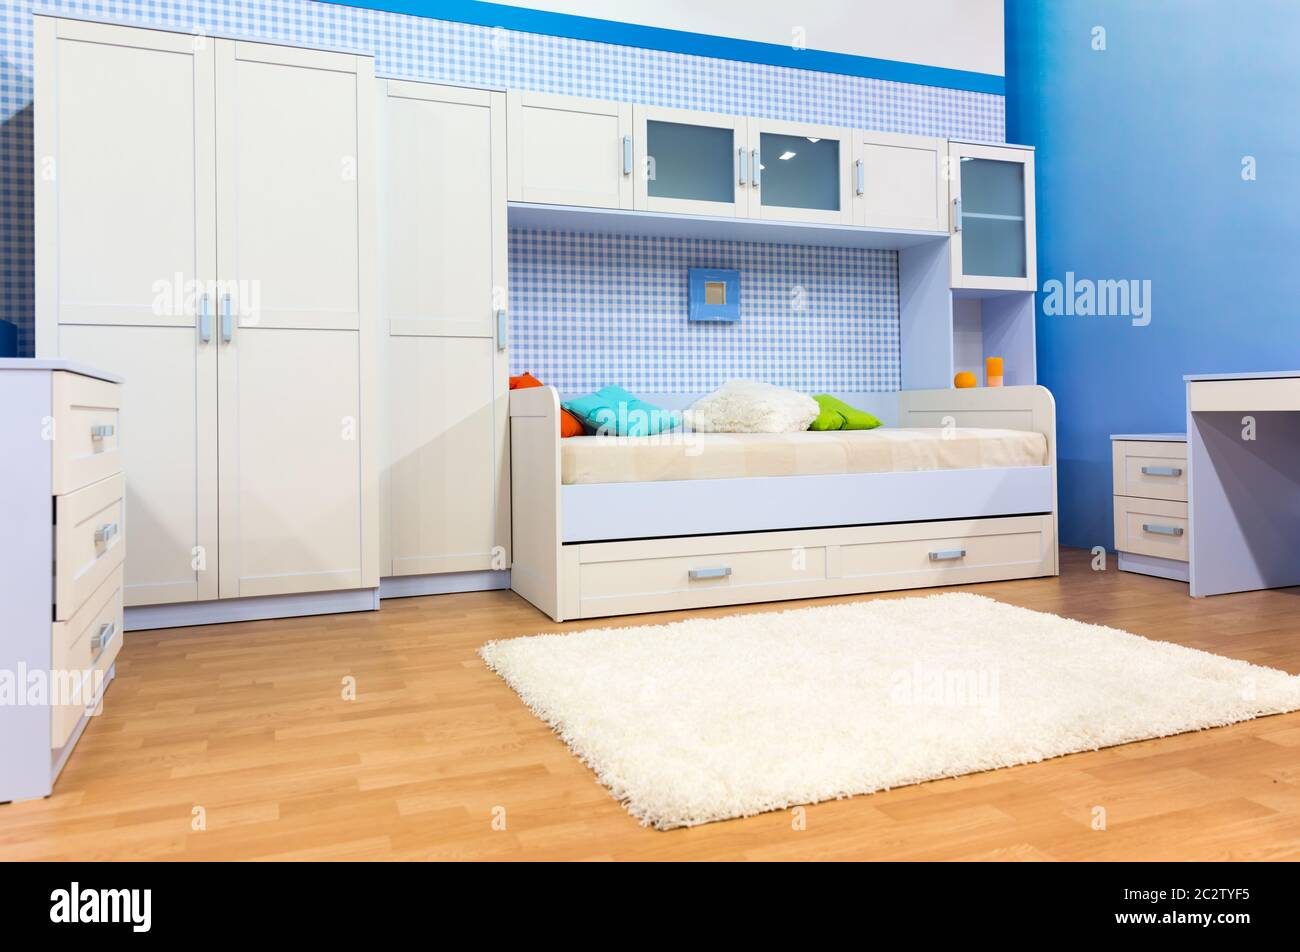 Bright Child S Bedroom With A Bed With Colorful Pillows And Cupboard Stock Photo Alamy